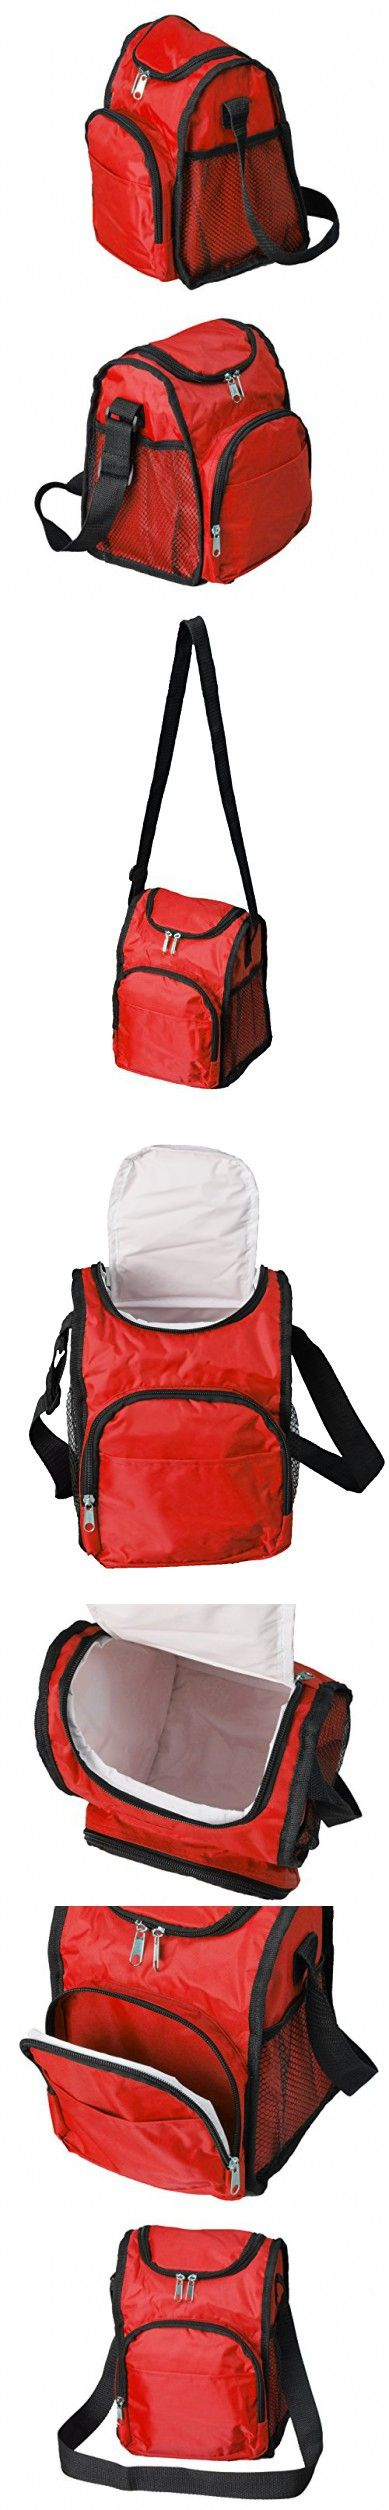 Lunchboxes for Boys - Insulated Boys Lunch Boxes, Thermal Red Lunch Bags for Kids School